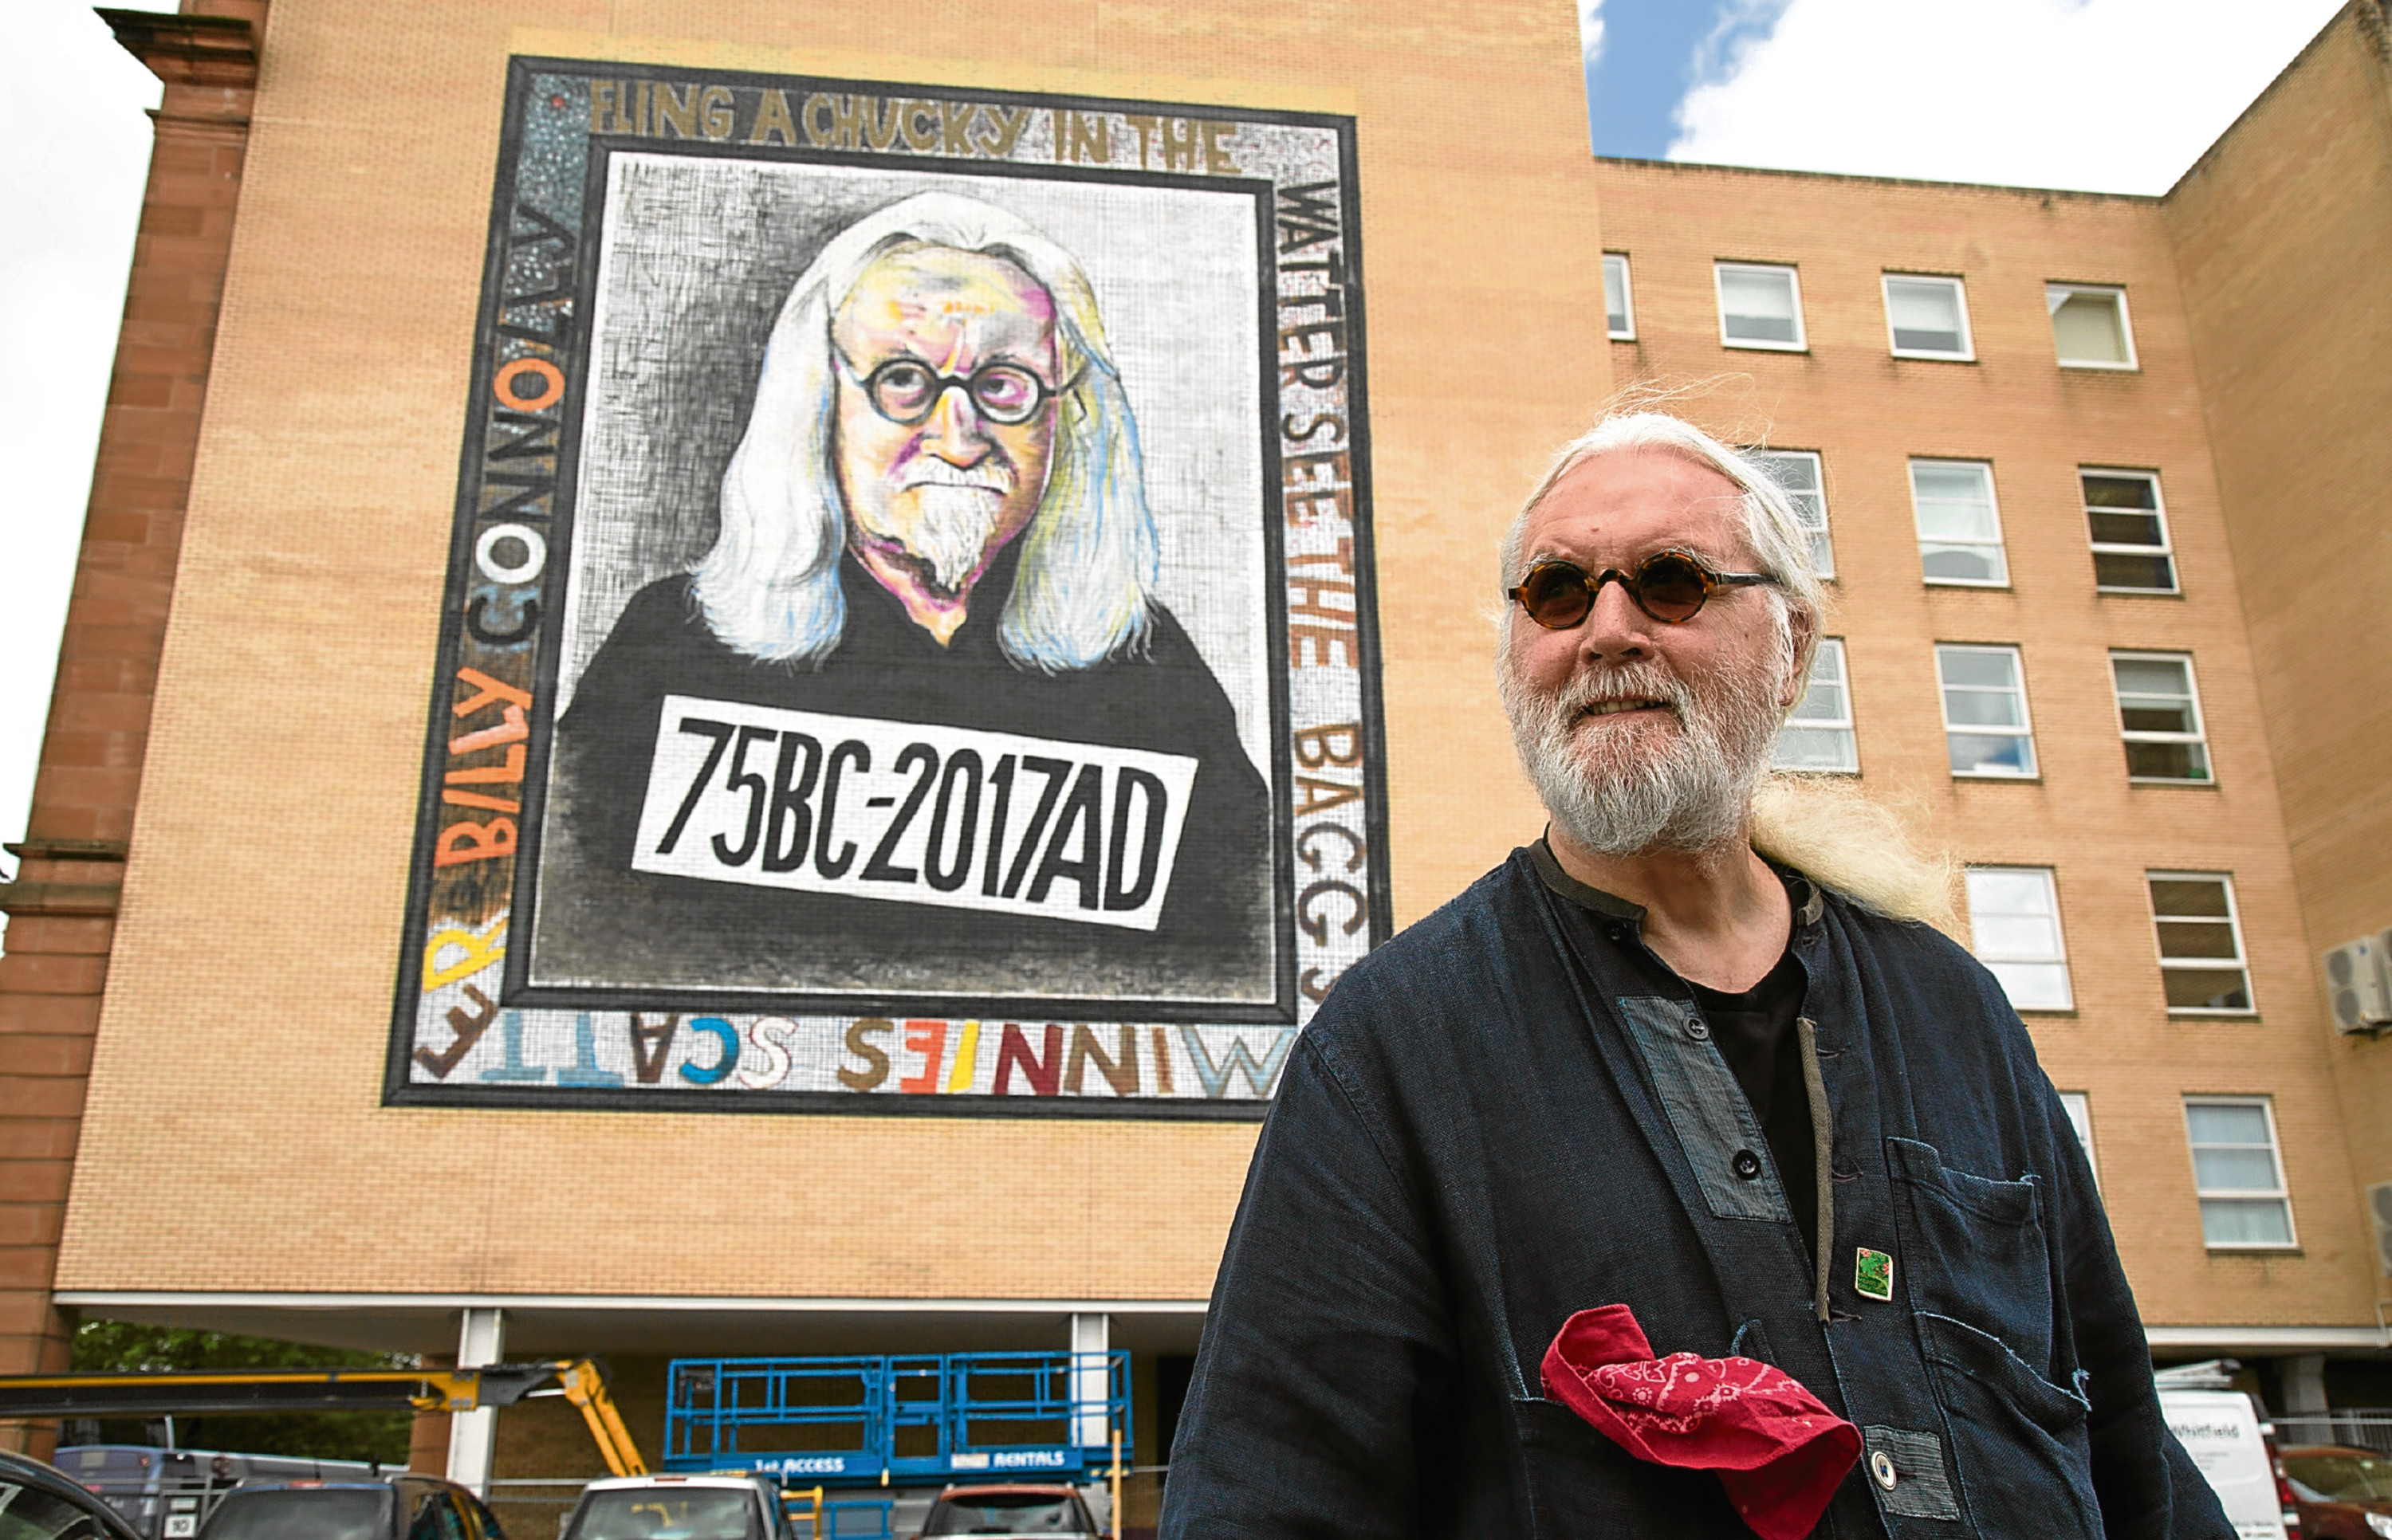 Billy Connolly tours the giant murals of him in Glasgow (BBC)